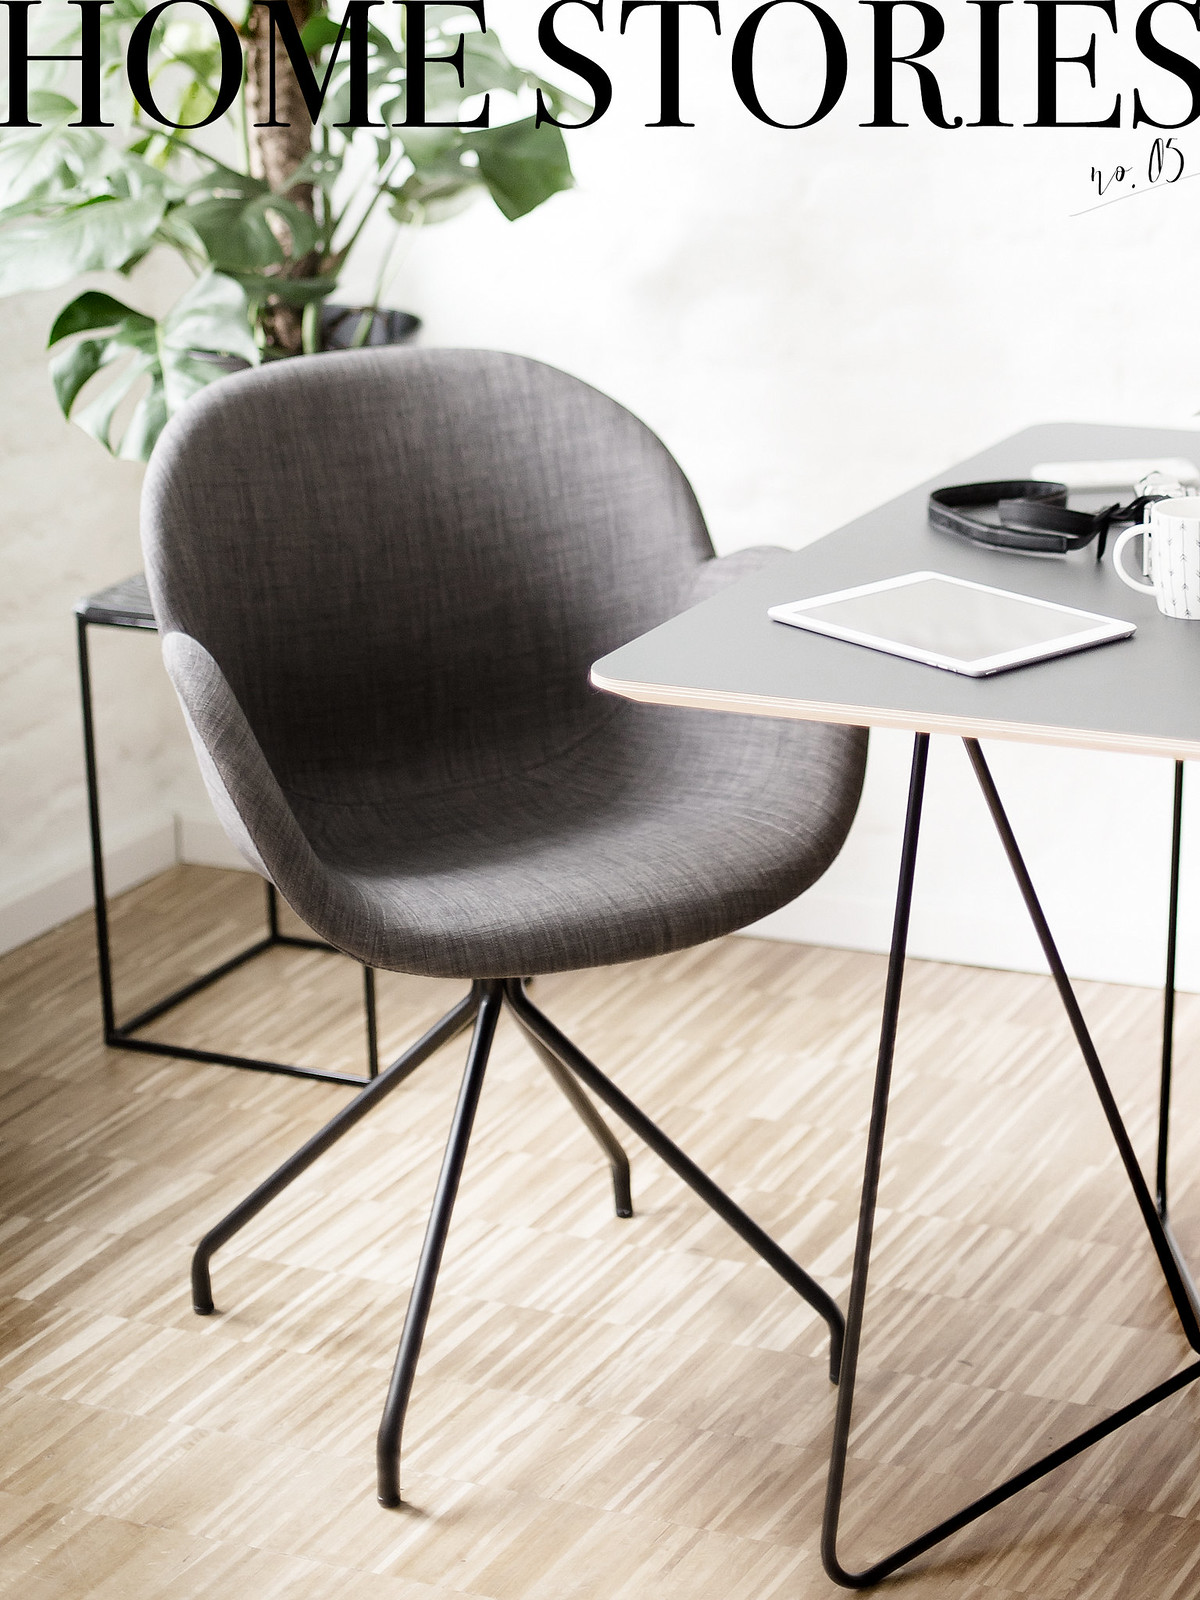 raumfreunde raum.freunde contur stuhl chair eames loft loftlife inspiration tumblr table ando tisch arbeitschtisch pärchen couple love living interior home&living interiordesign workspace blogger bloggerlife cats & dogs modeblog ricarda schernus 4